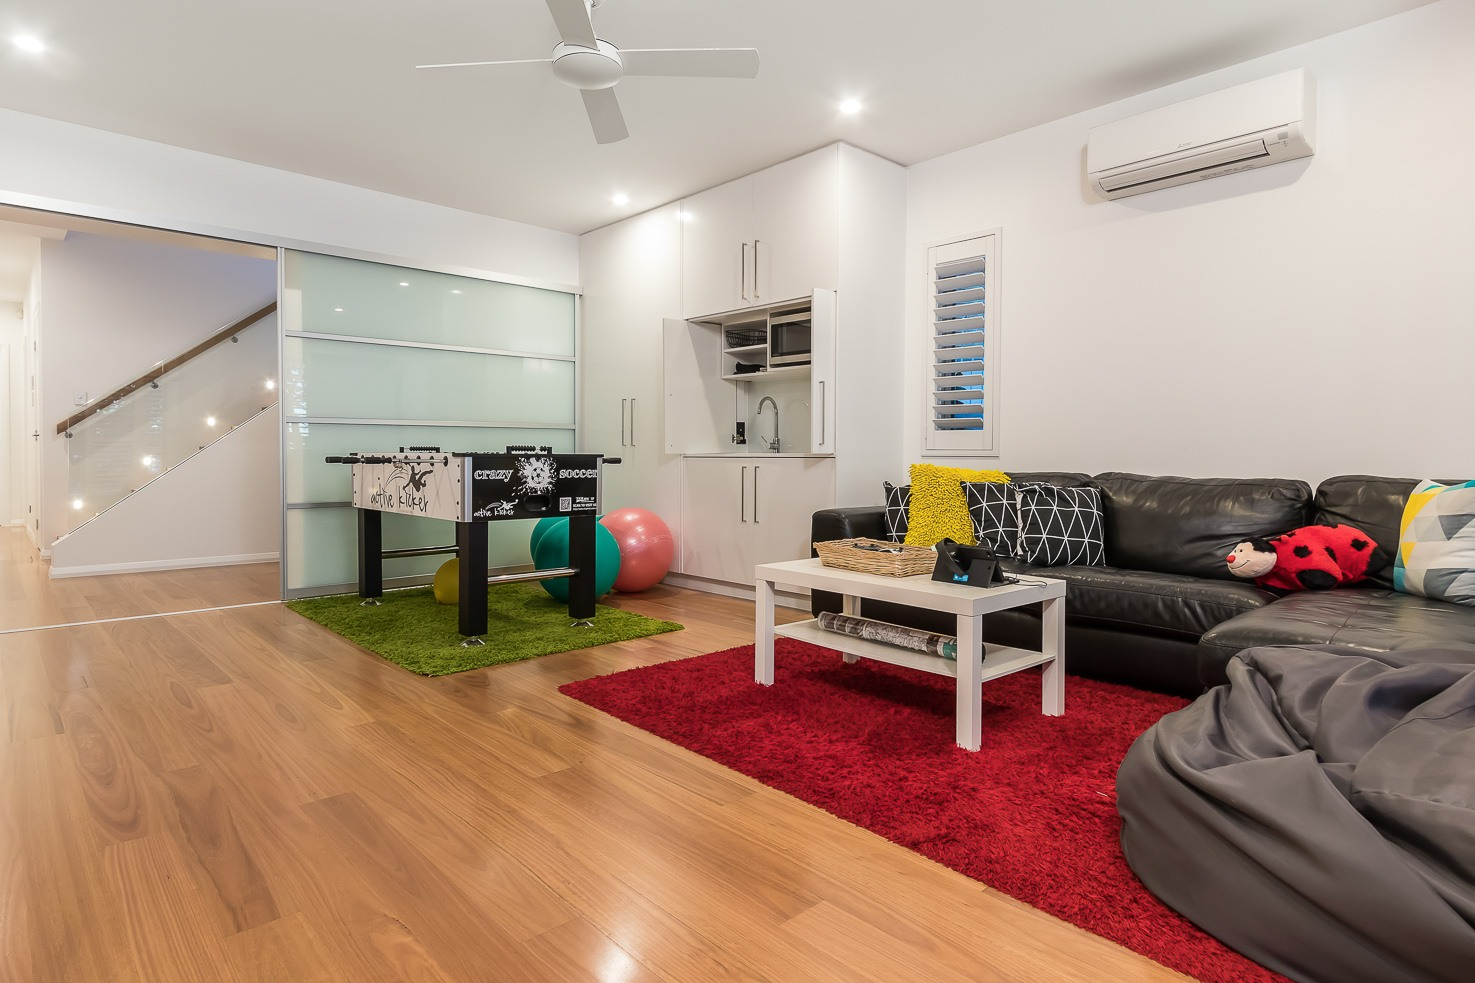 Brisbane Manly contemporary home by evermore gmaes room area